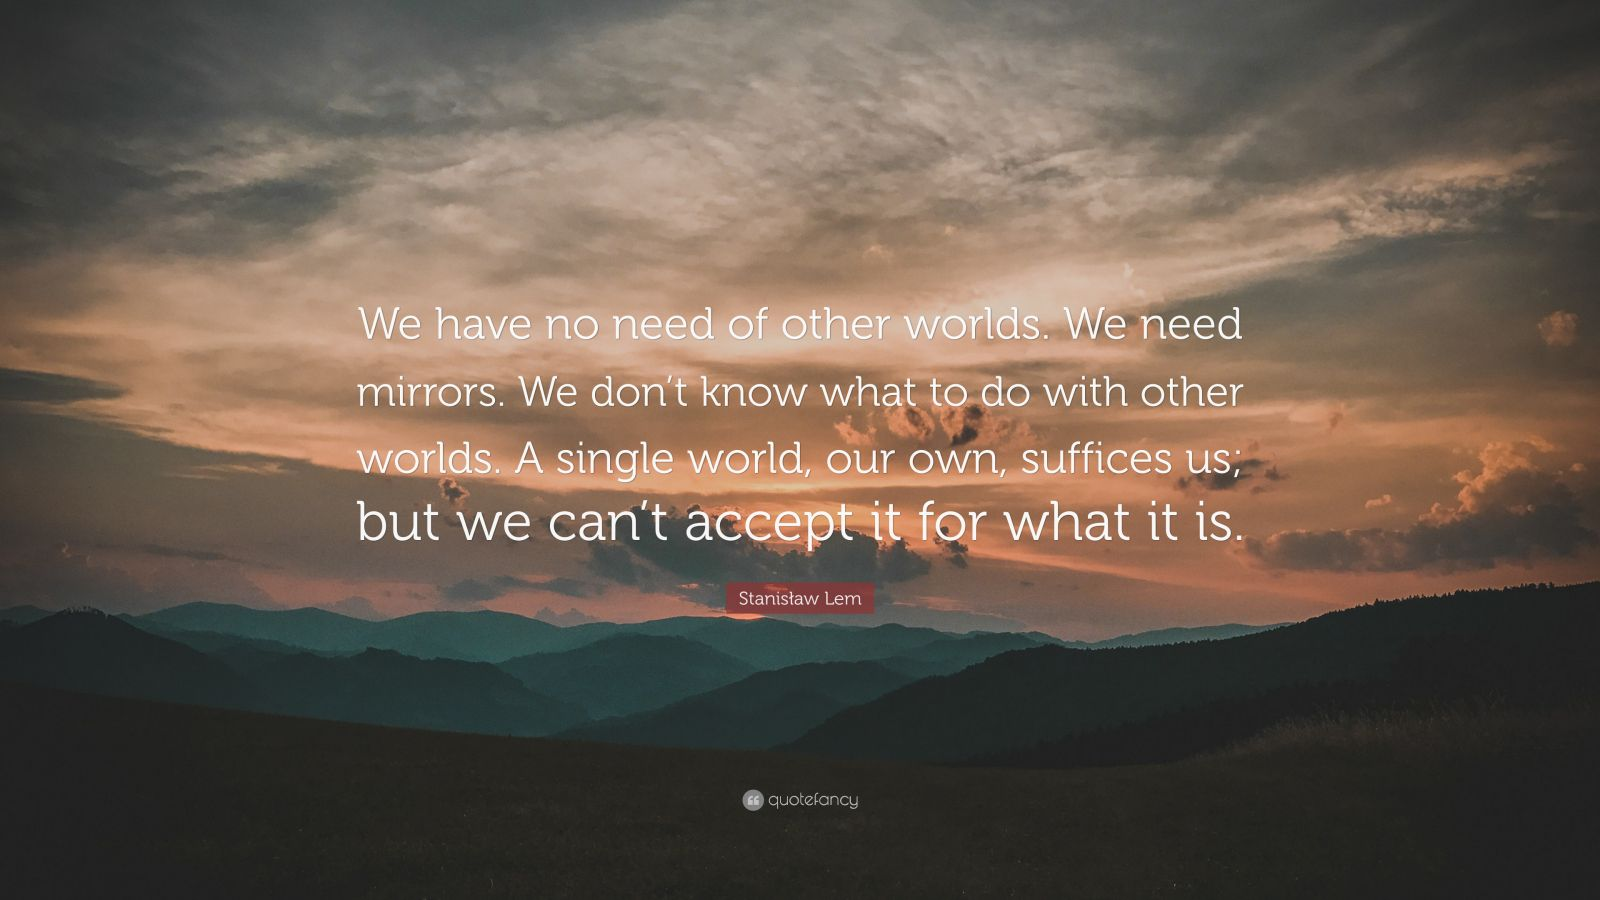 "Stanisław Lem Quote: ""We have no need of other worlds. We need mirrors. We don't know what to do with other worlds. A single world, our own, suffices us; but we can't accept it for what it is."""